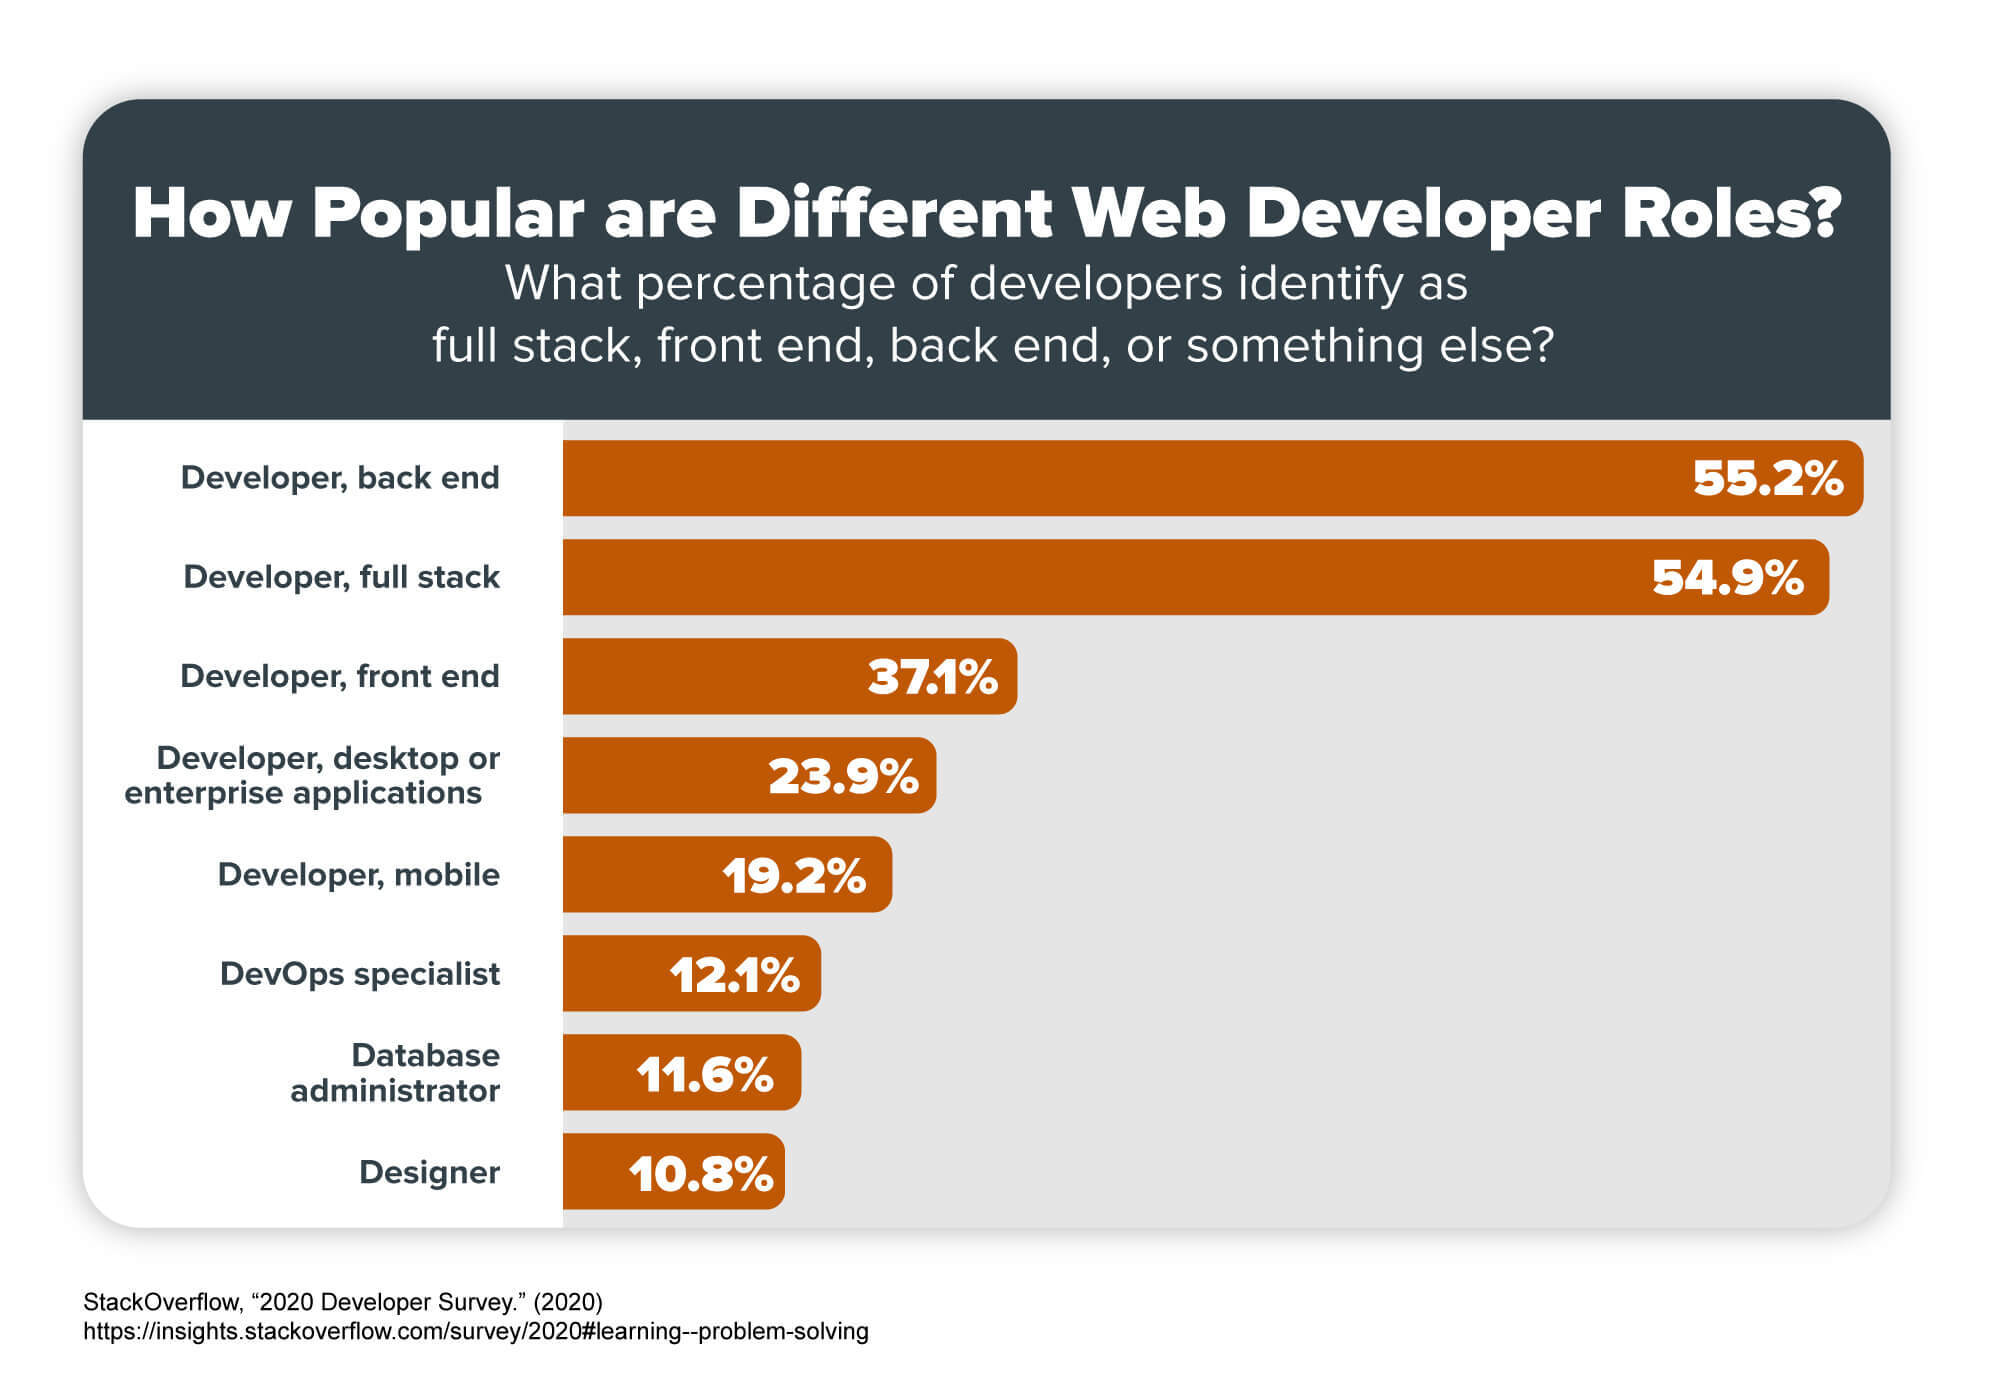 A chart that shows the percentage of developers who identify as full stack, front end, back end, or something else.